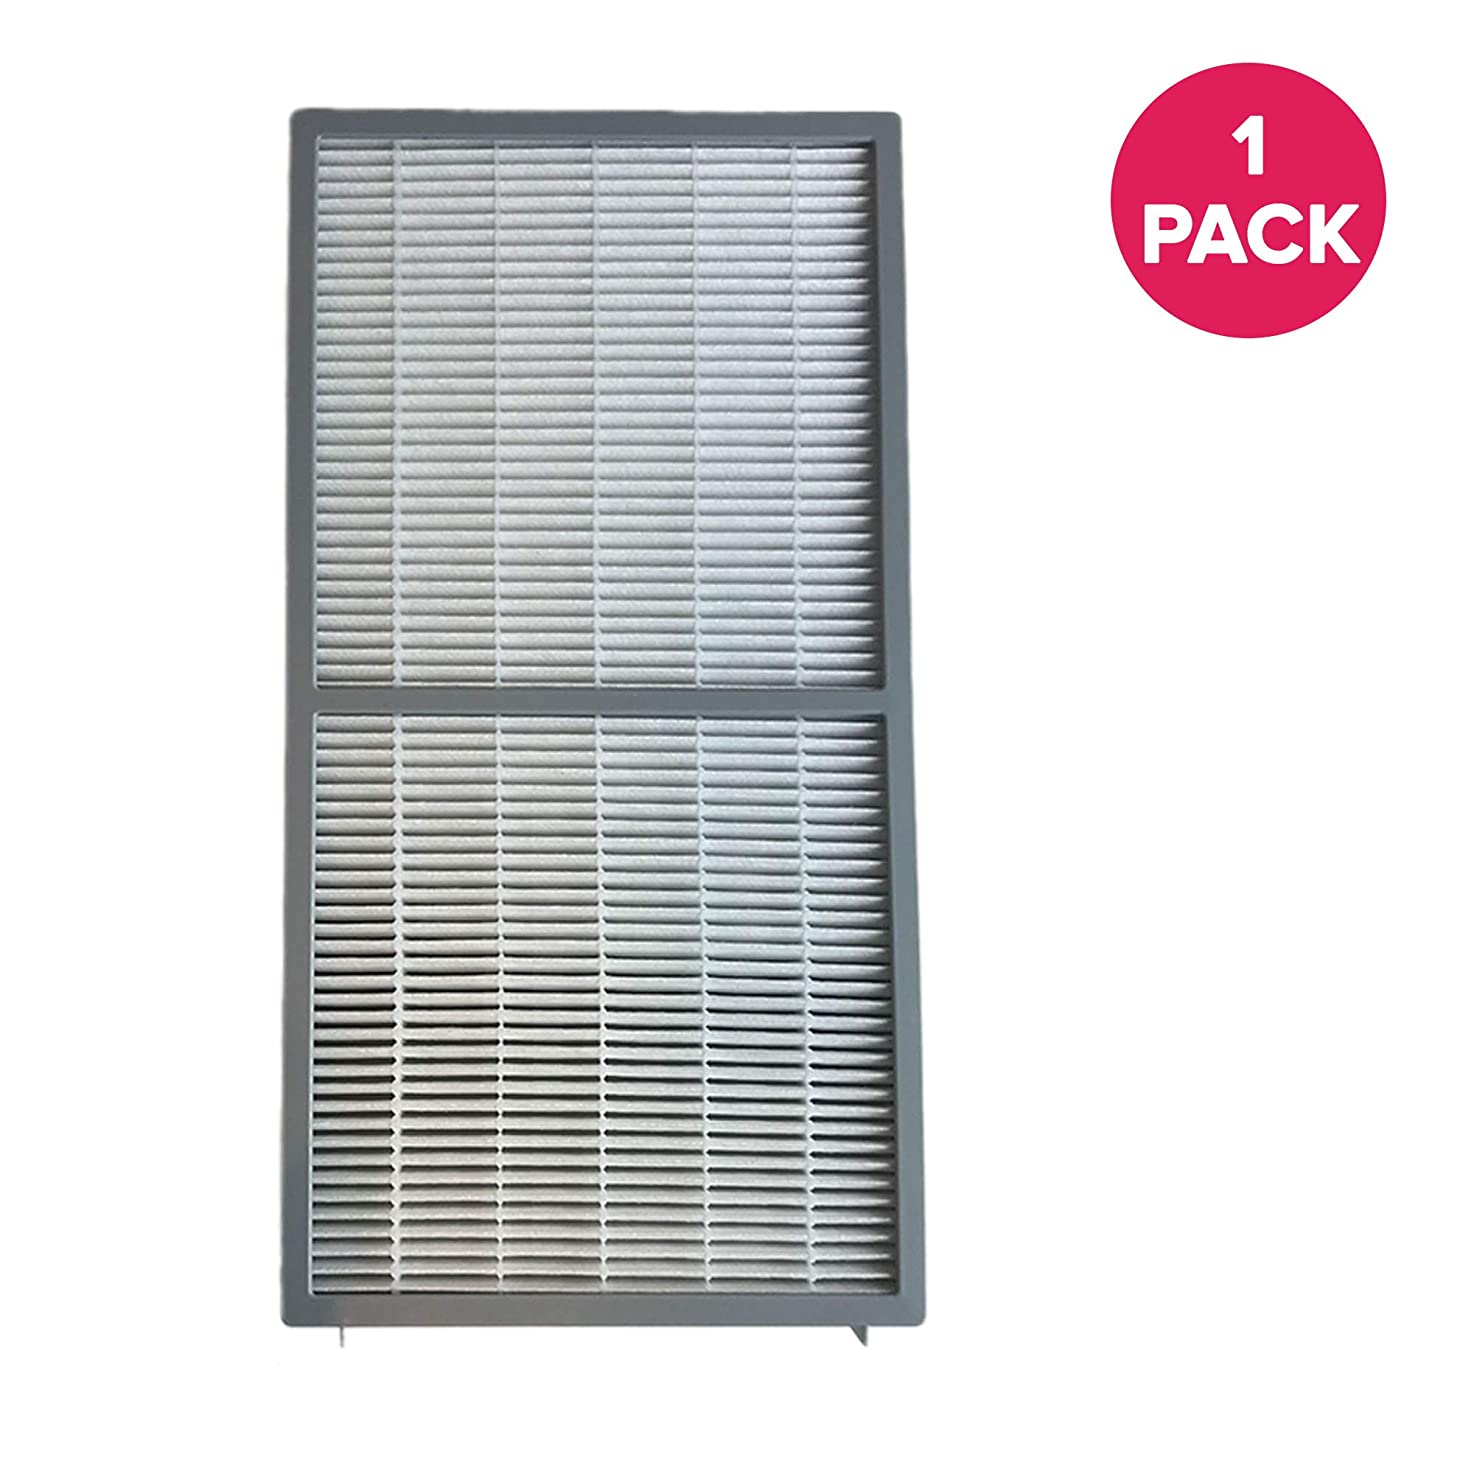 Think Crucial Replacement for Hunter 30962 Air Purifier Filter Fits 30730 & 30731